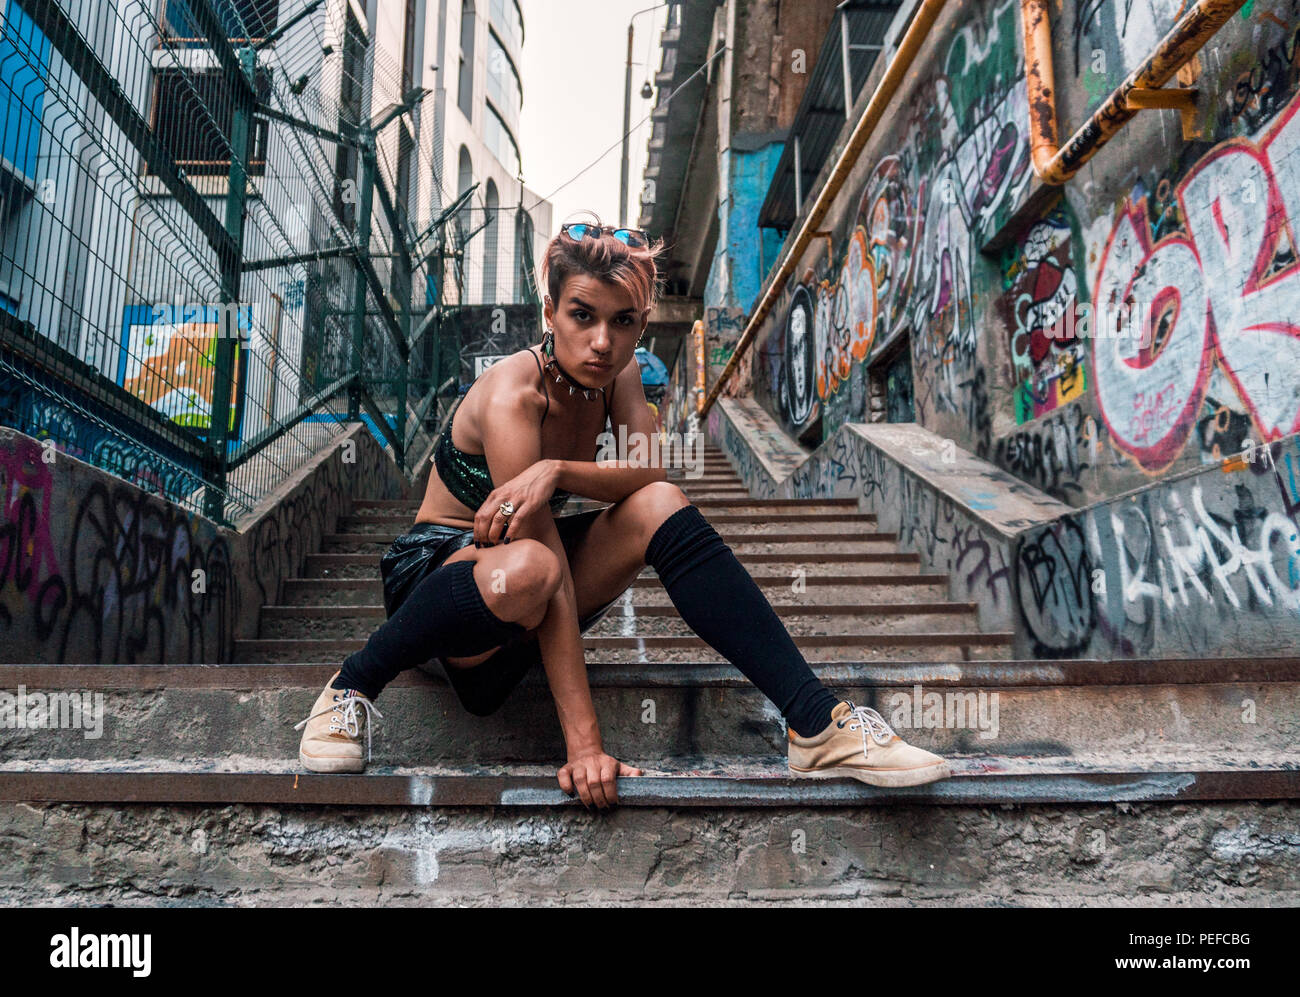 Street Punk Girl Sitting On Concrete Stairs Urban Lifestyle In City Passage Painted With Graffiti Under The Bridge